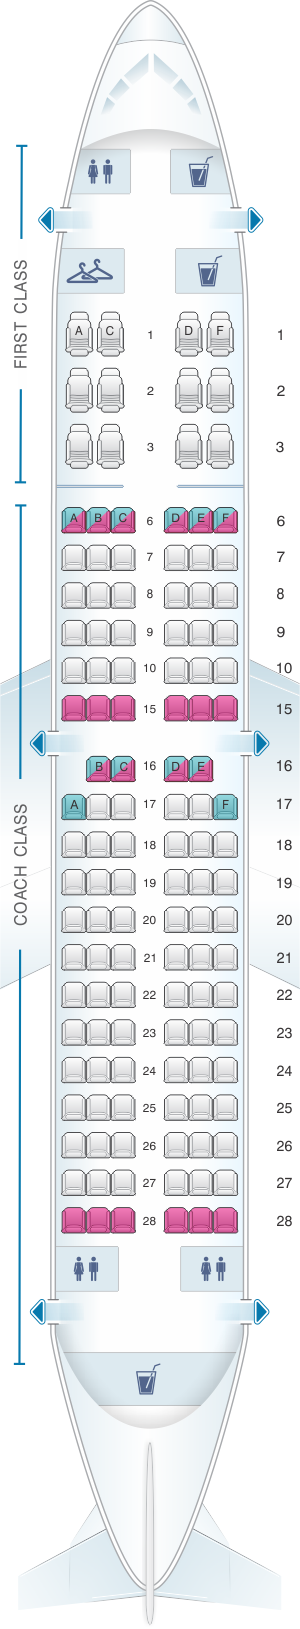 Seat map for Alaska Airlines - Horizon Air Boeing B737 700